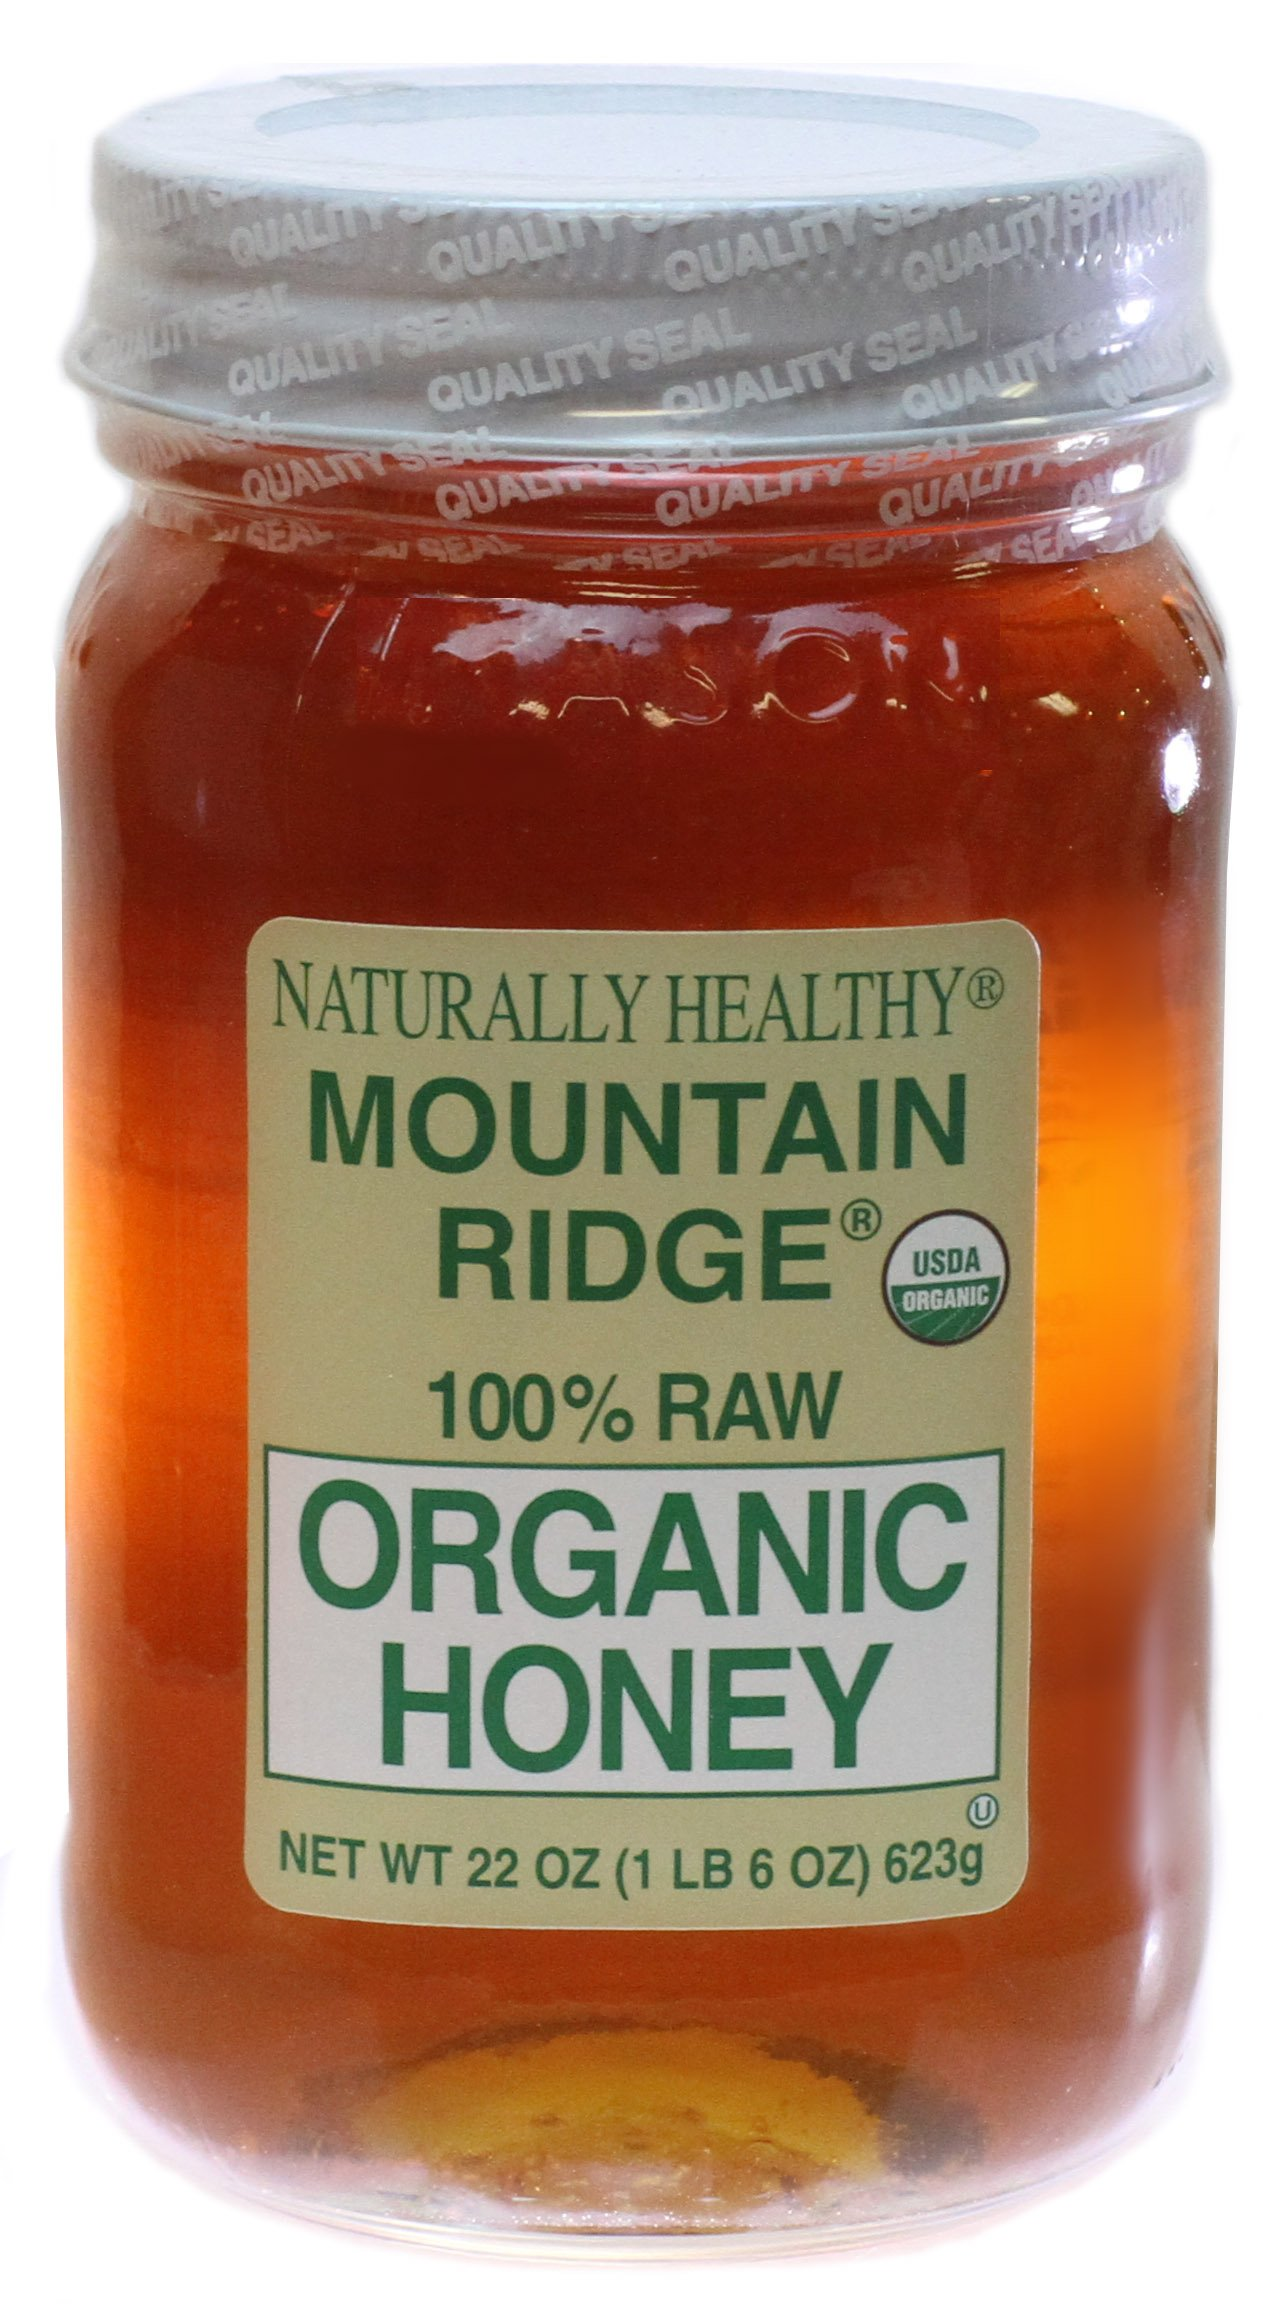 USDA Organic Mountain Ridge Honey - 22 oz of 100% Pure Raw Honey in Glass Mason Jar.